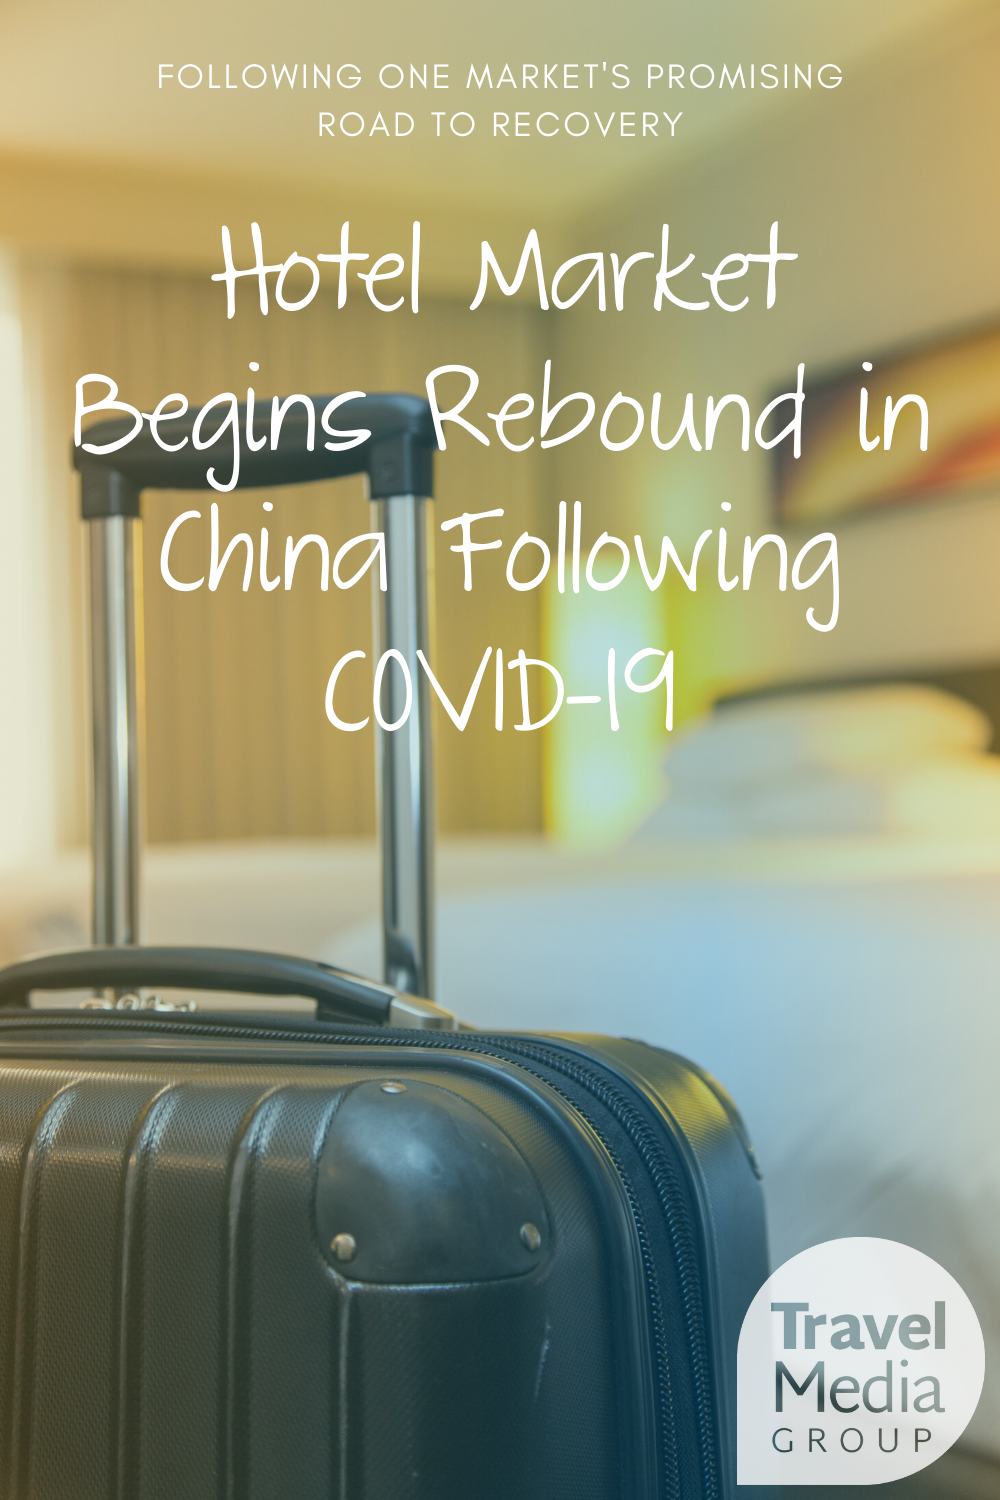 With uncertainty on the rise in North America, we look to Chinese market to get a glimpse at the future for the hotel industry stateside.